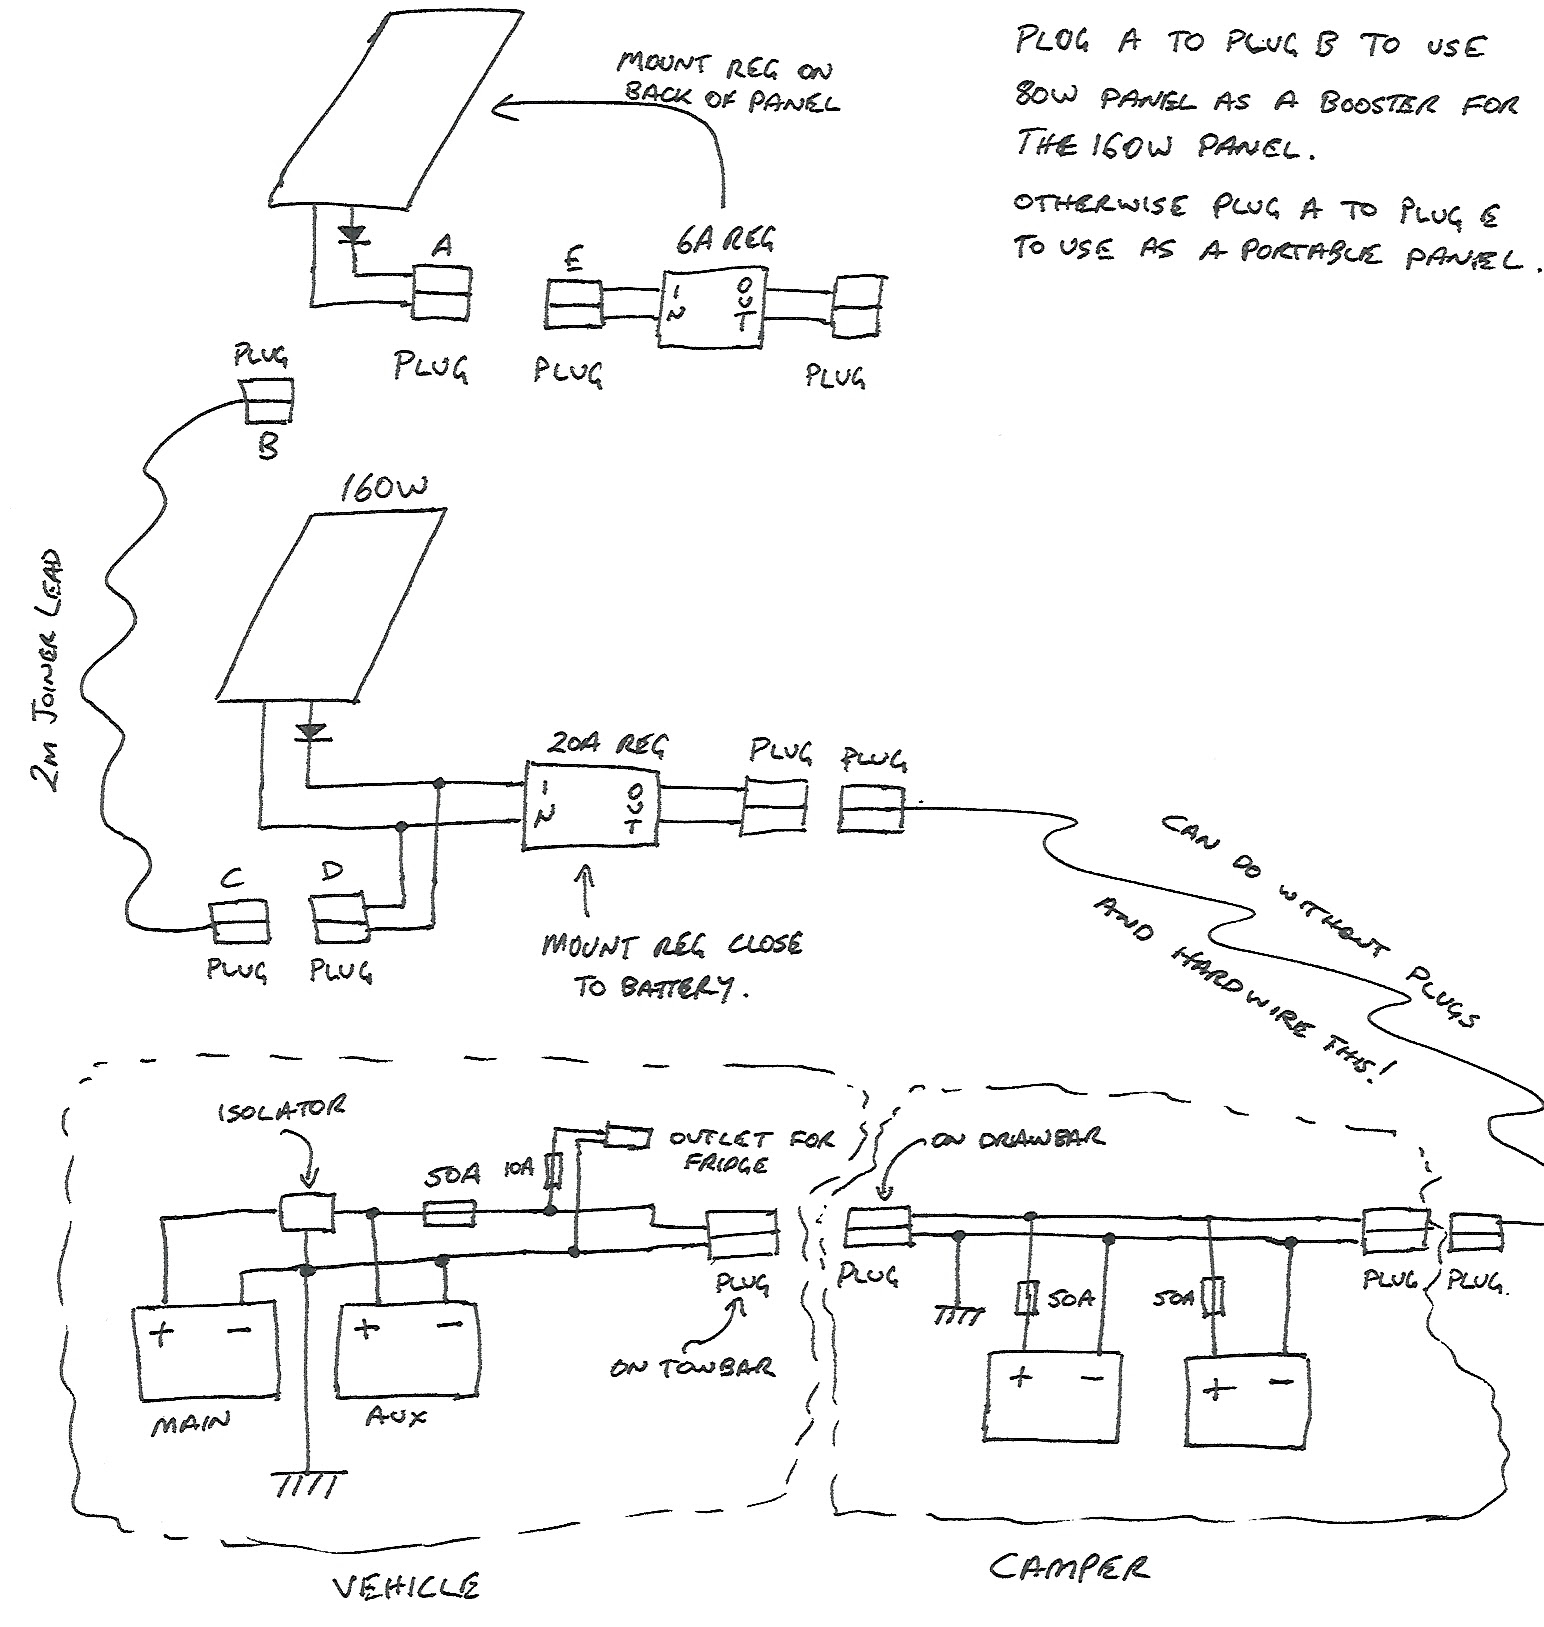 Travel Trailer Jayco Trailer Wiring Diagram